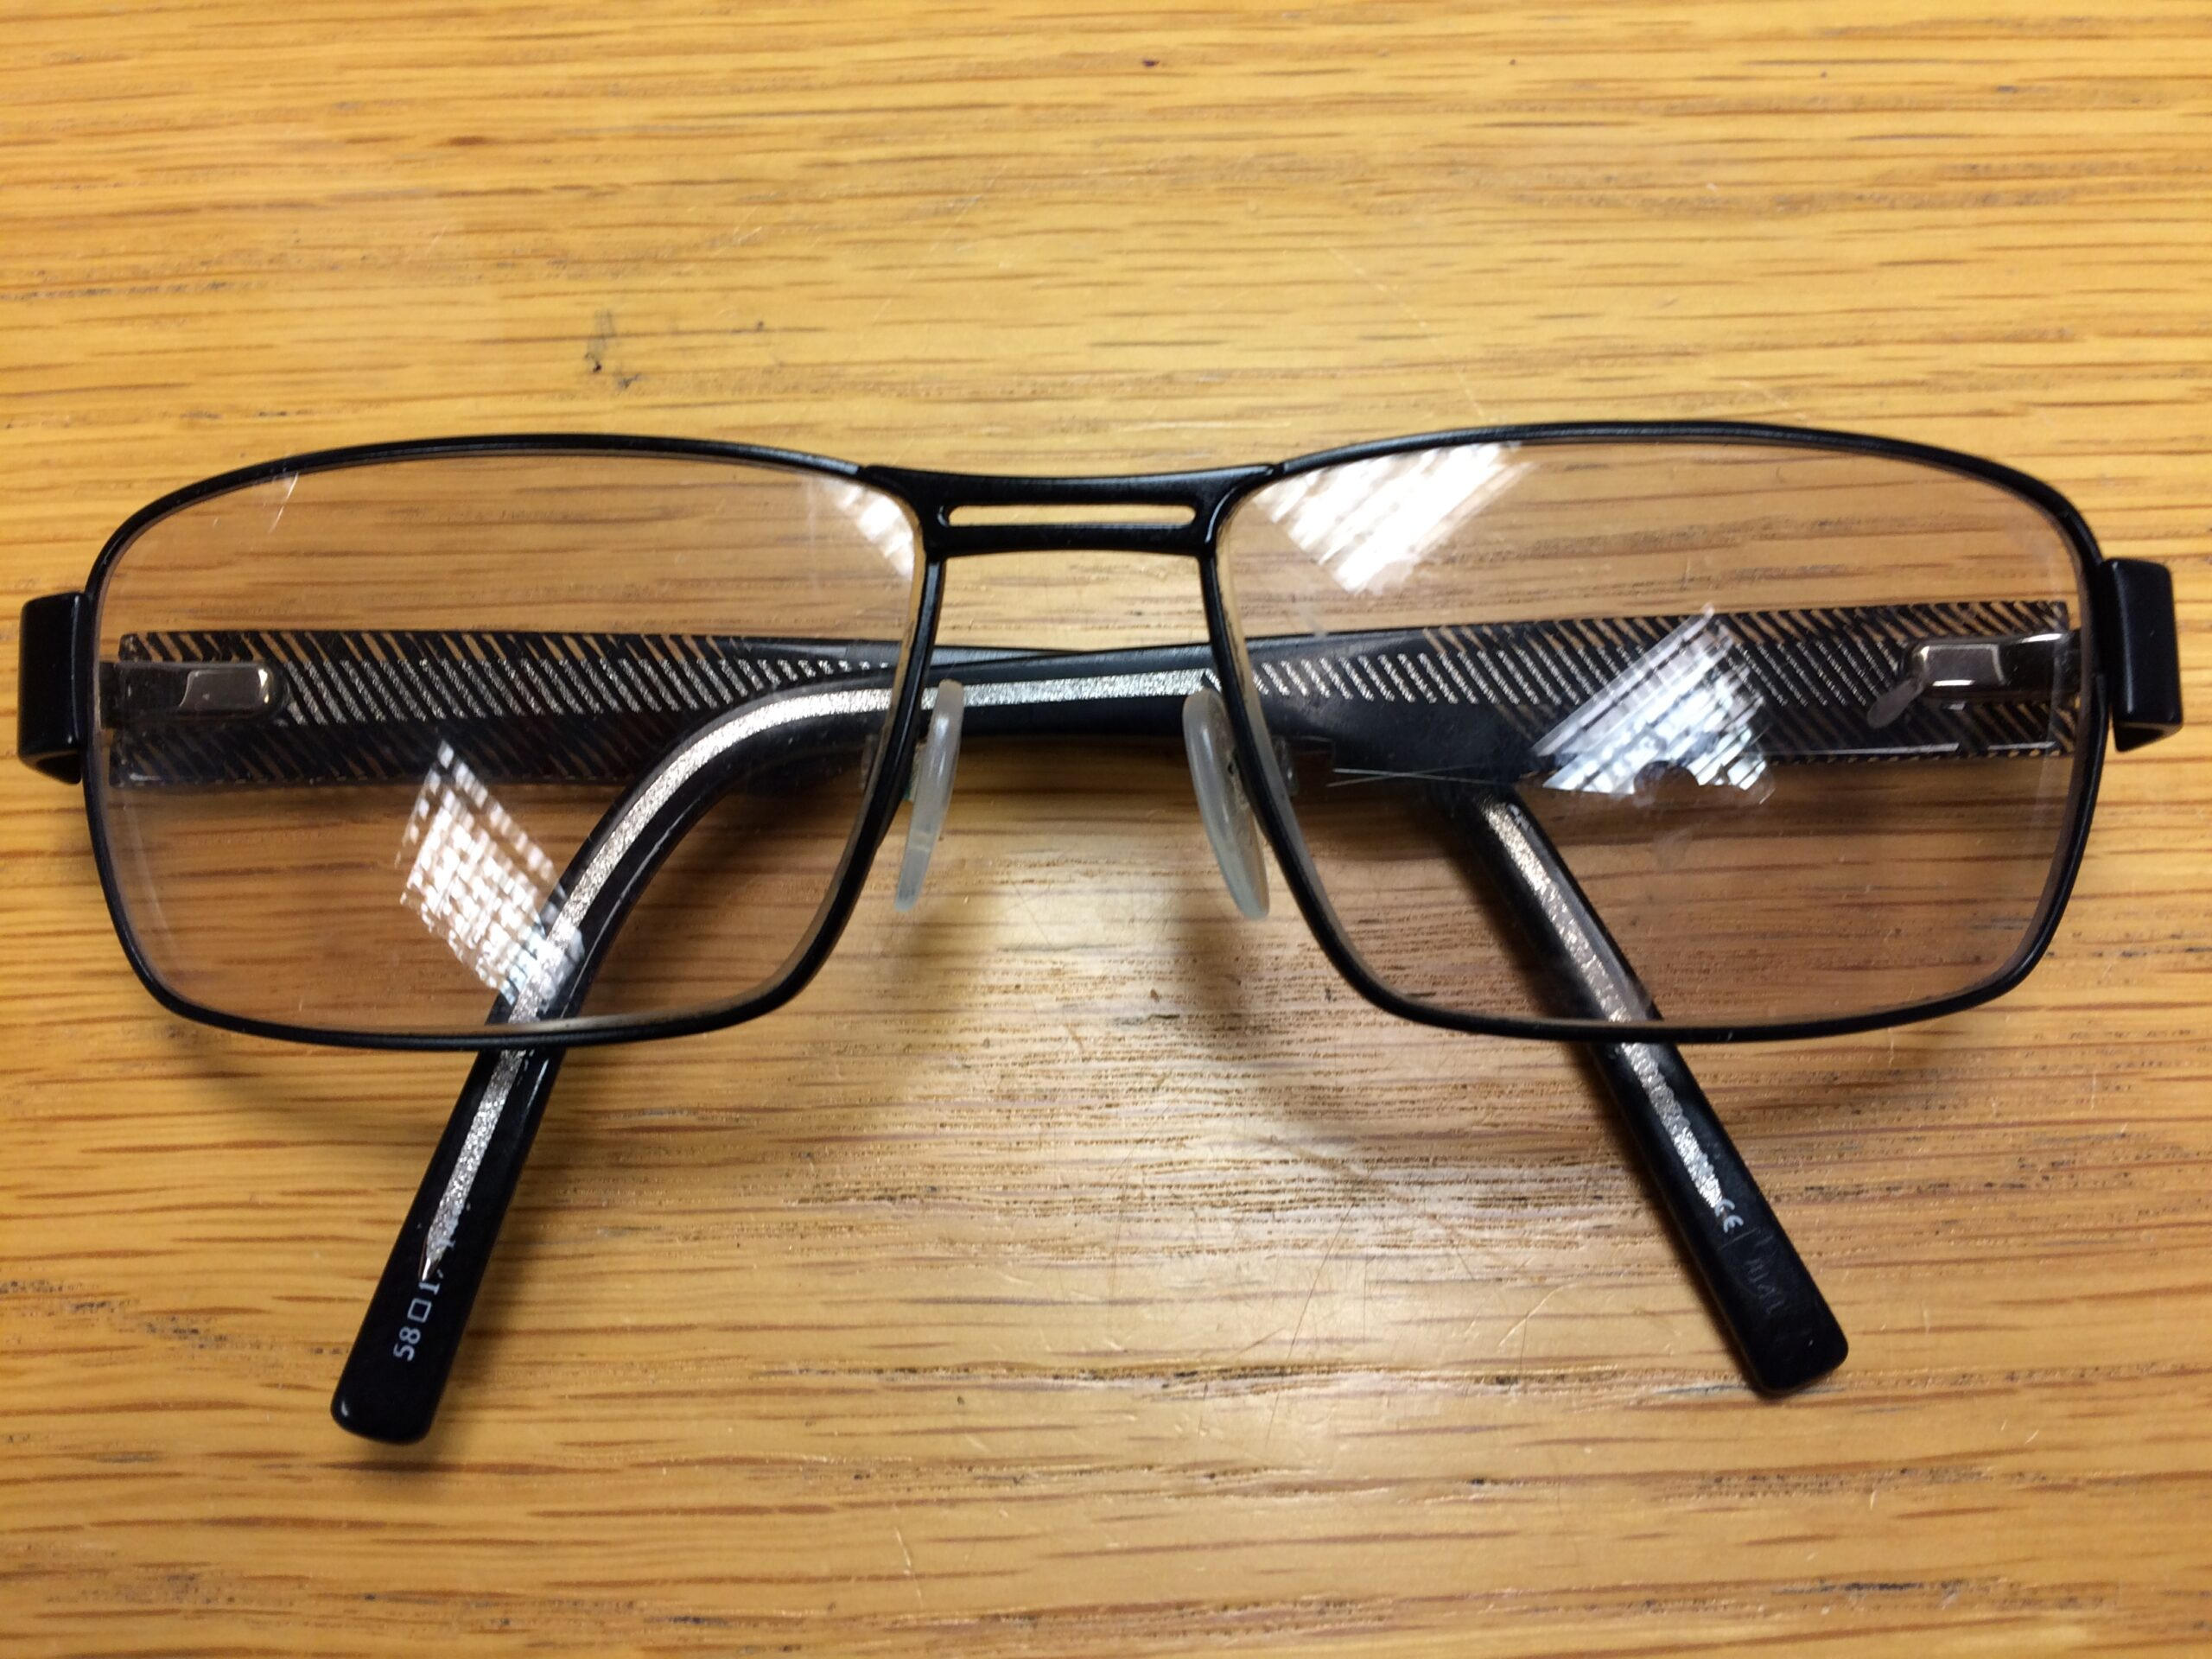 Alsager Community Support | Free Help and Advice for Local People | Black spectacles